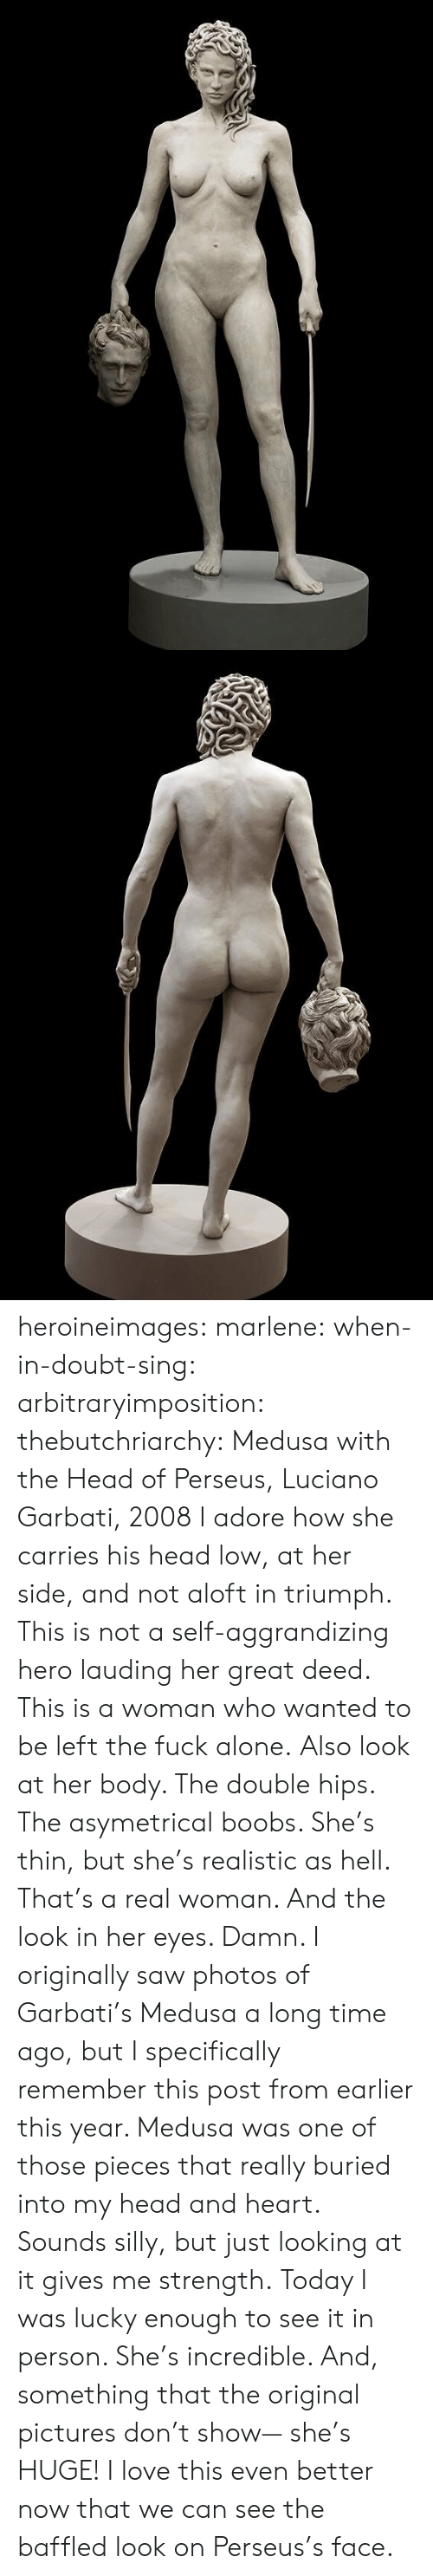 specifically: heroineimages:  marlene:  when-in-doubt-sing:  arbitraryimposition:  thebutchriarchy: Medusa with the Head of Perseus, Luciano Garbati, 2008 I adore how she carries his head low, at her side, and not aloft in triumph.  This is not a self-aggrandizing hero lauding her great deed. This is a woman who wanted to be left the fuck alone.   Also look at her body. The double hips. The asymetrical boobs. She's thin, but she's realistic as hell. That's a real woman.  And the look in her eyes. Damn.   I originally saw photos of Garbati's Medusa a long time ago, but I specifically remember this post from earlier this year. Medusa was one of those pieces that really buried into my head and heart. Sounds silly, but just looking at it gives me strength. Today I was lucky enough to see it in person. She's incredible. And, something that the original pictures don't show— she's HUGE!    I love this even better now that we can see the baffled look on Perseus's face.